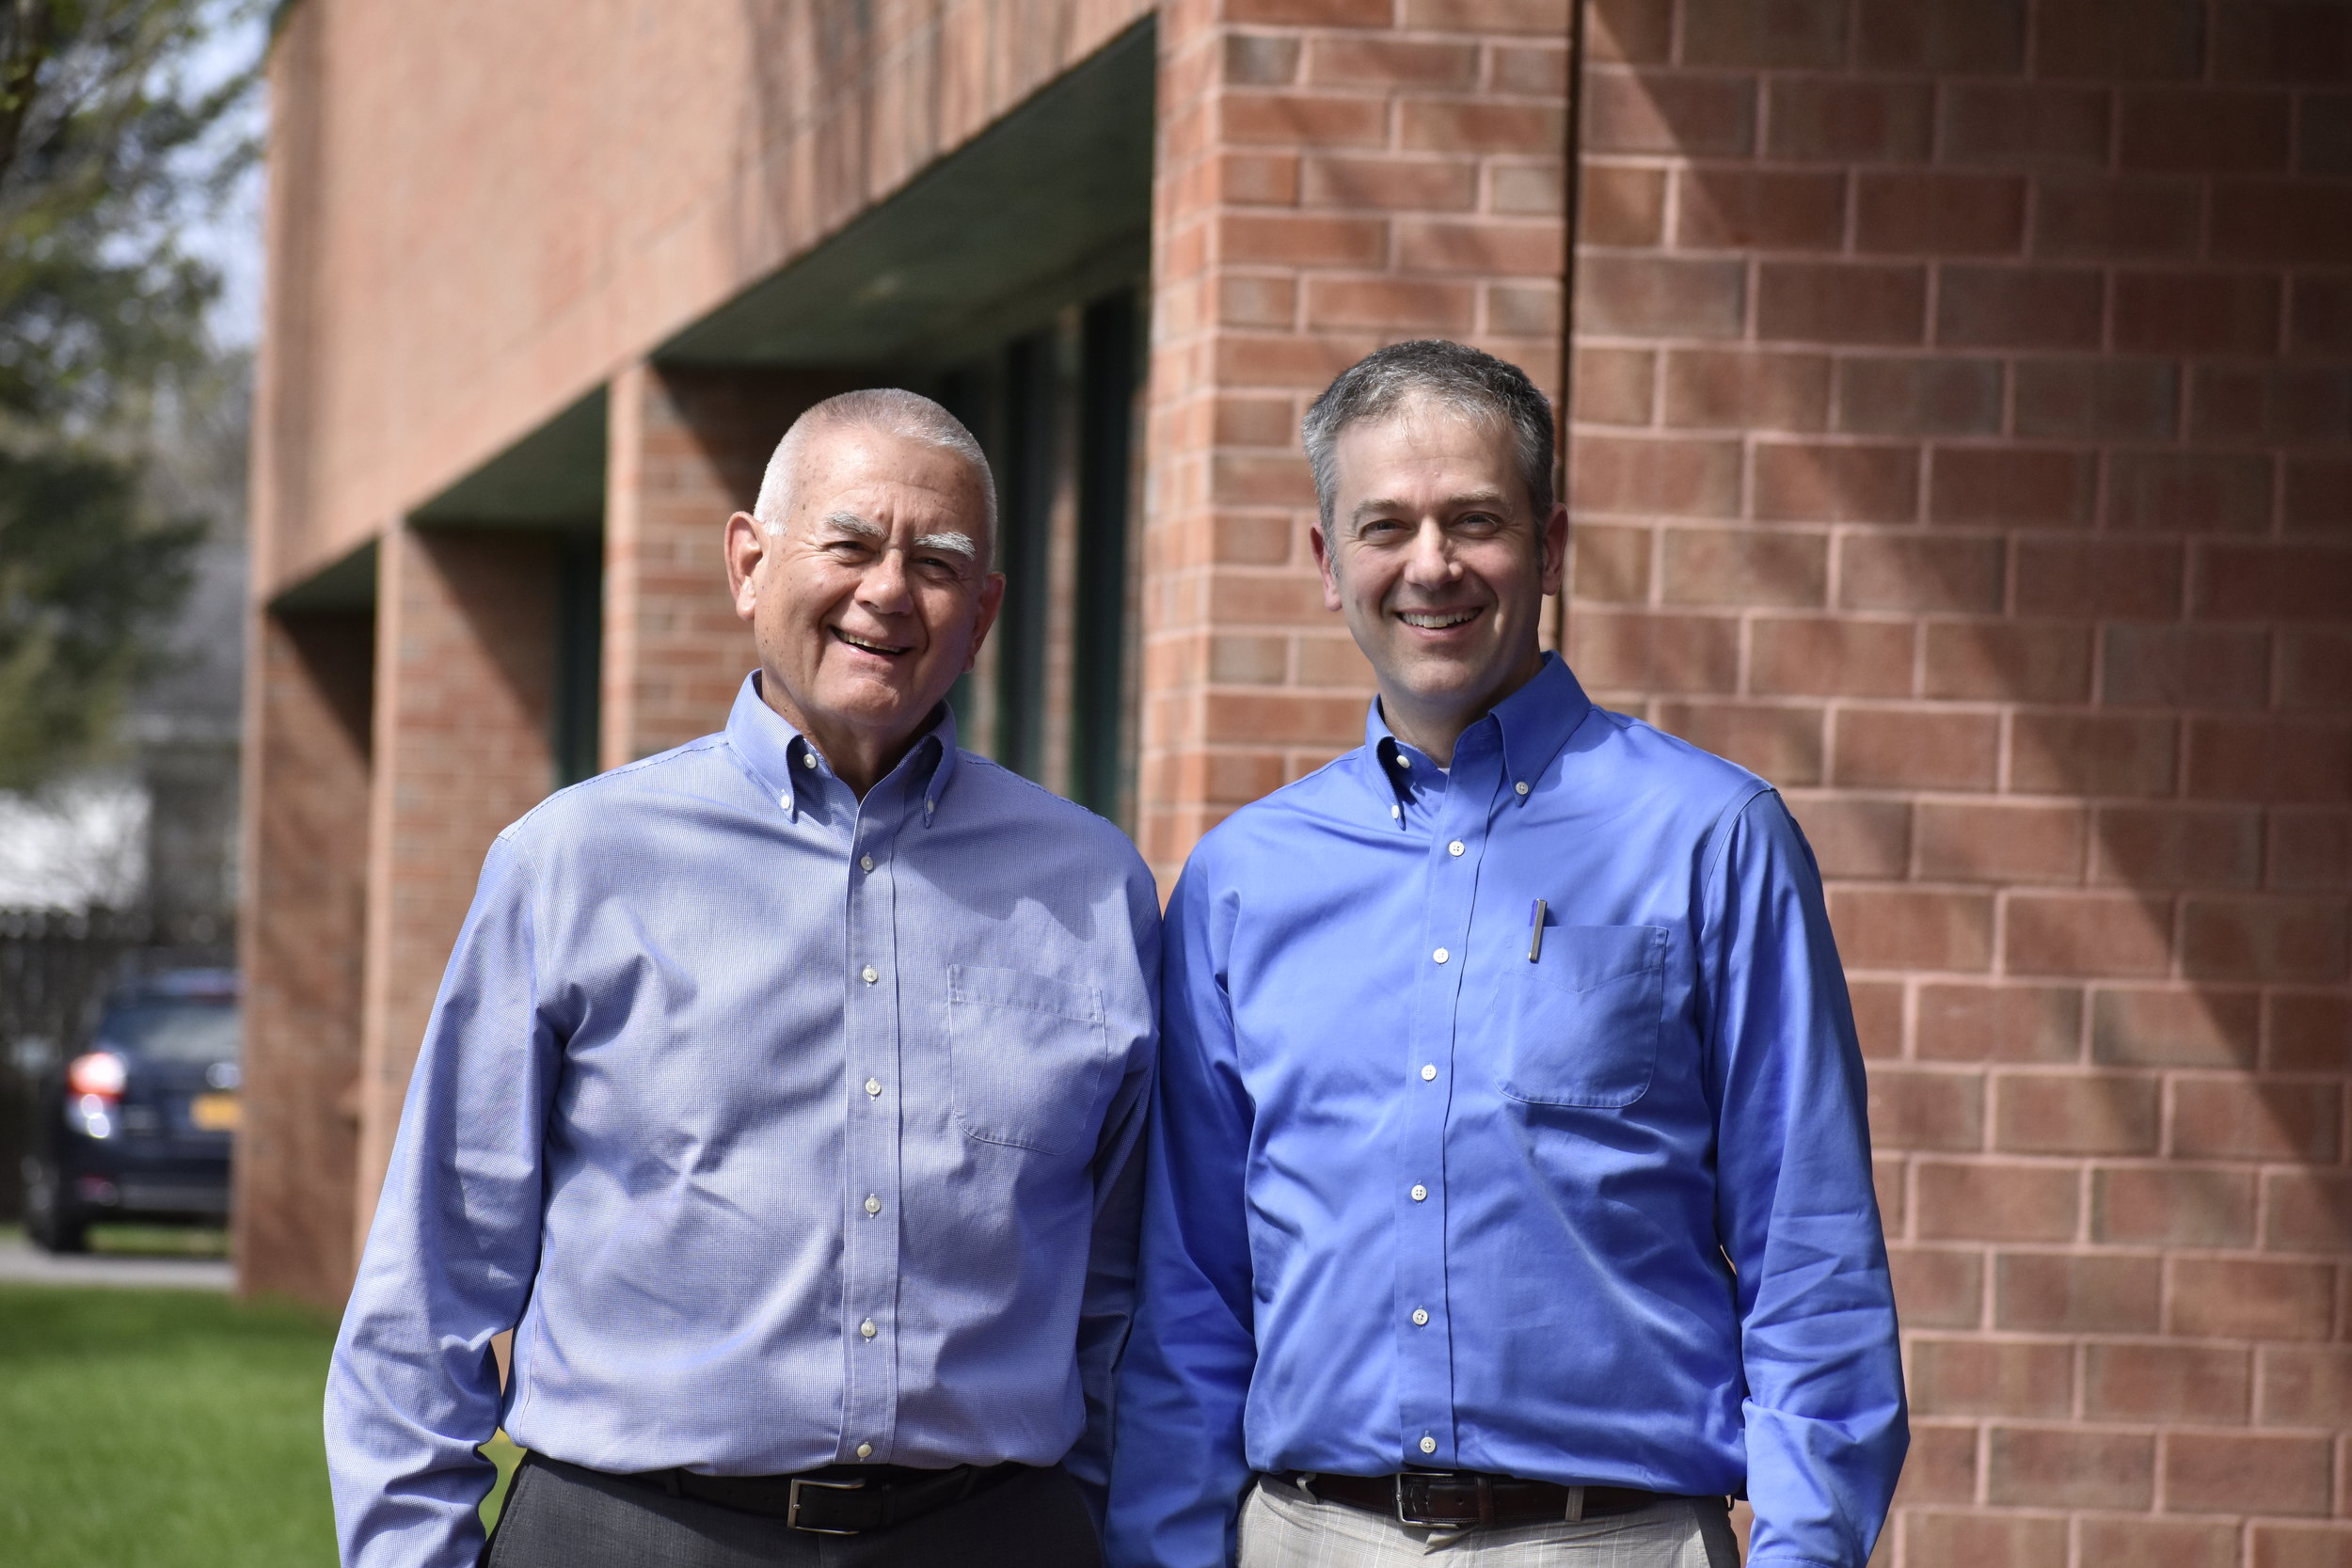 Jeff Emhoff, SIOR (left) and Josh Emhoff (right)